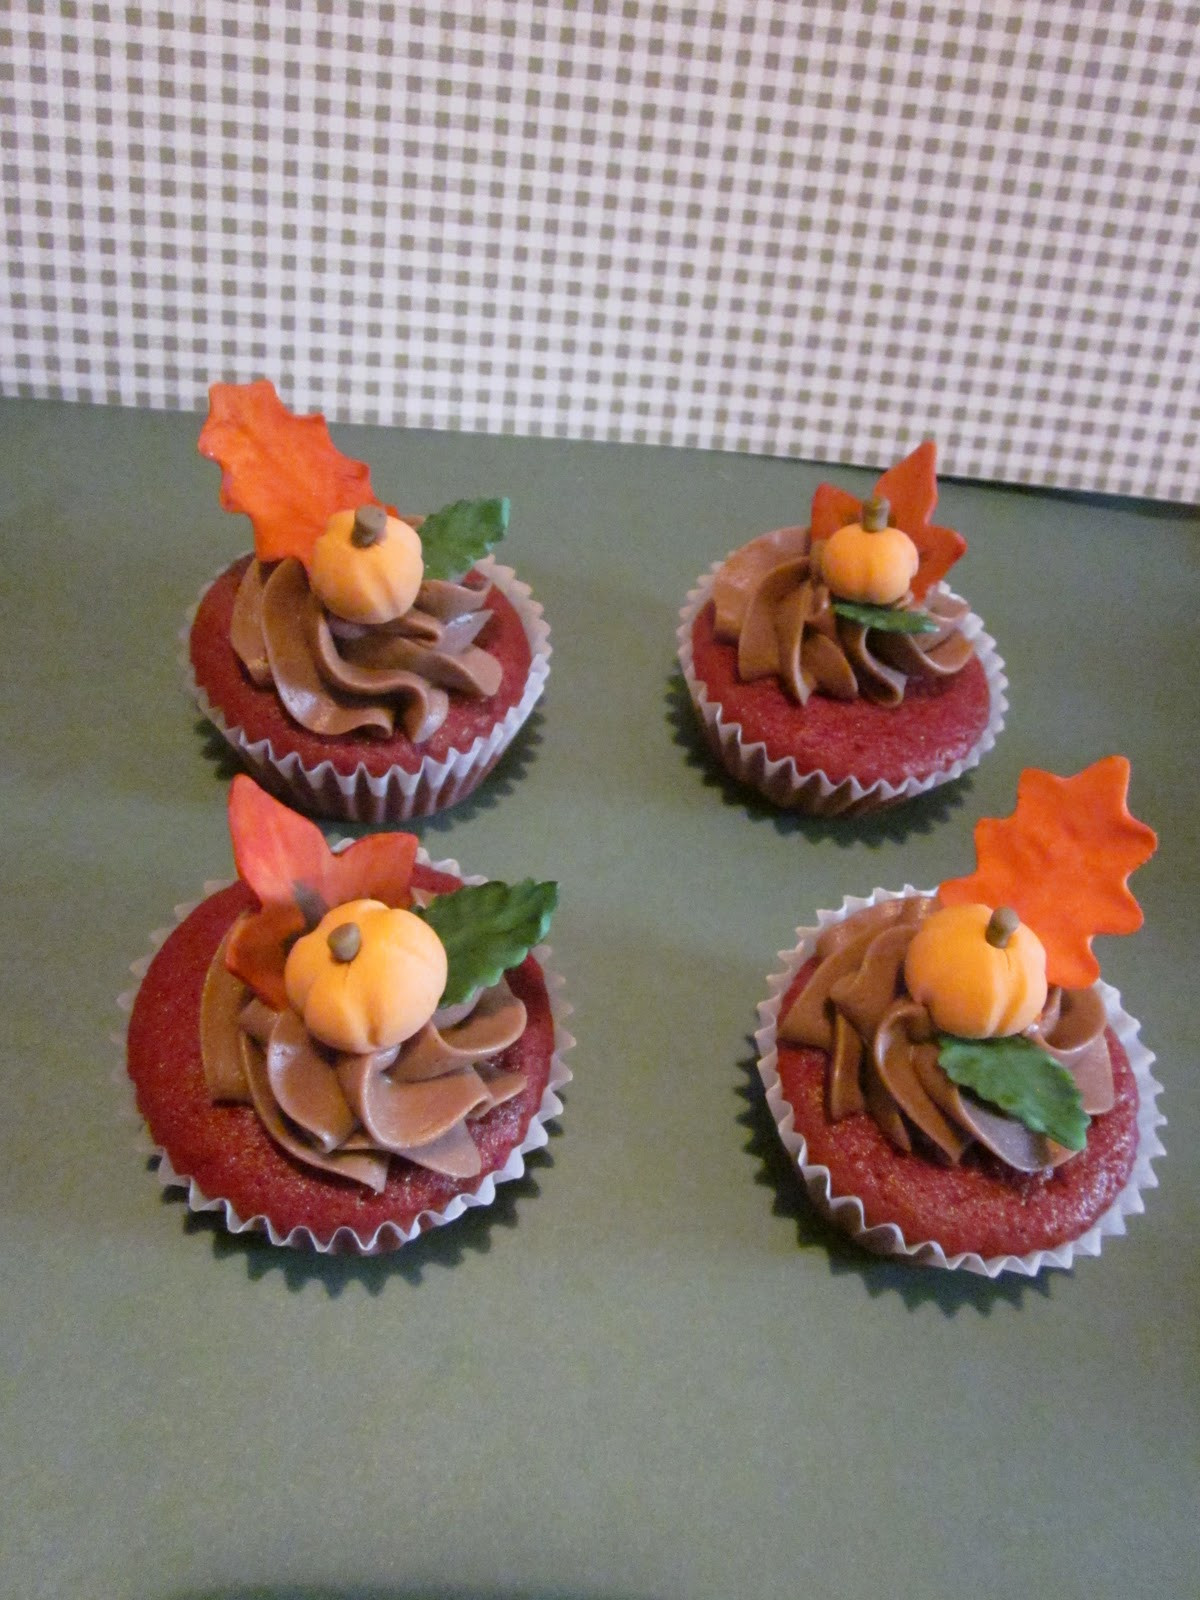 Fall Themed Cupcakes  Second Generation Cake Design Fall Themed Cupcakes